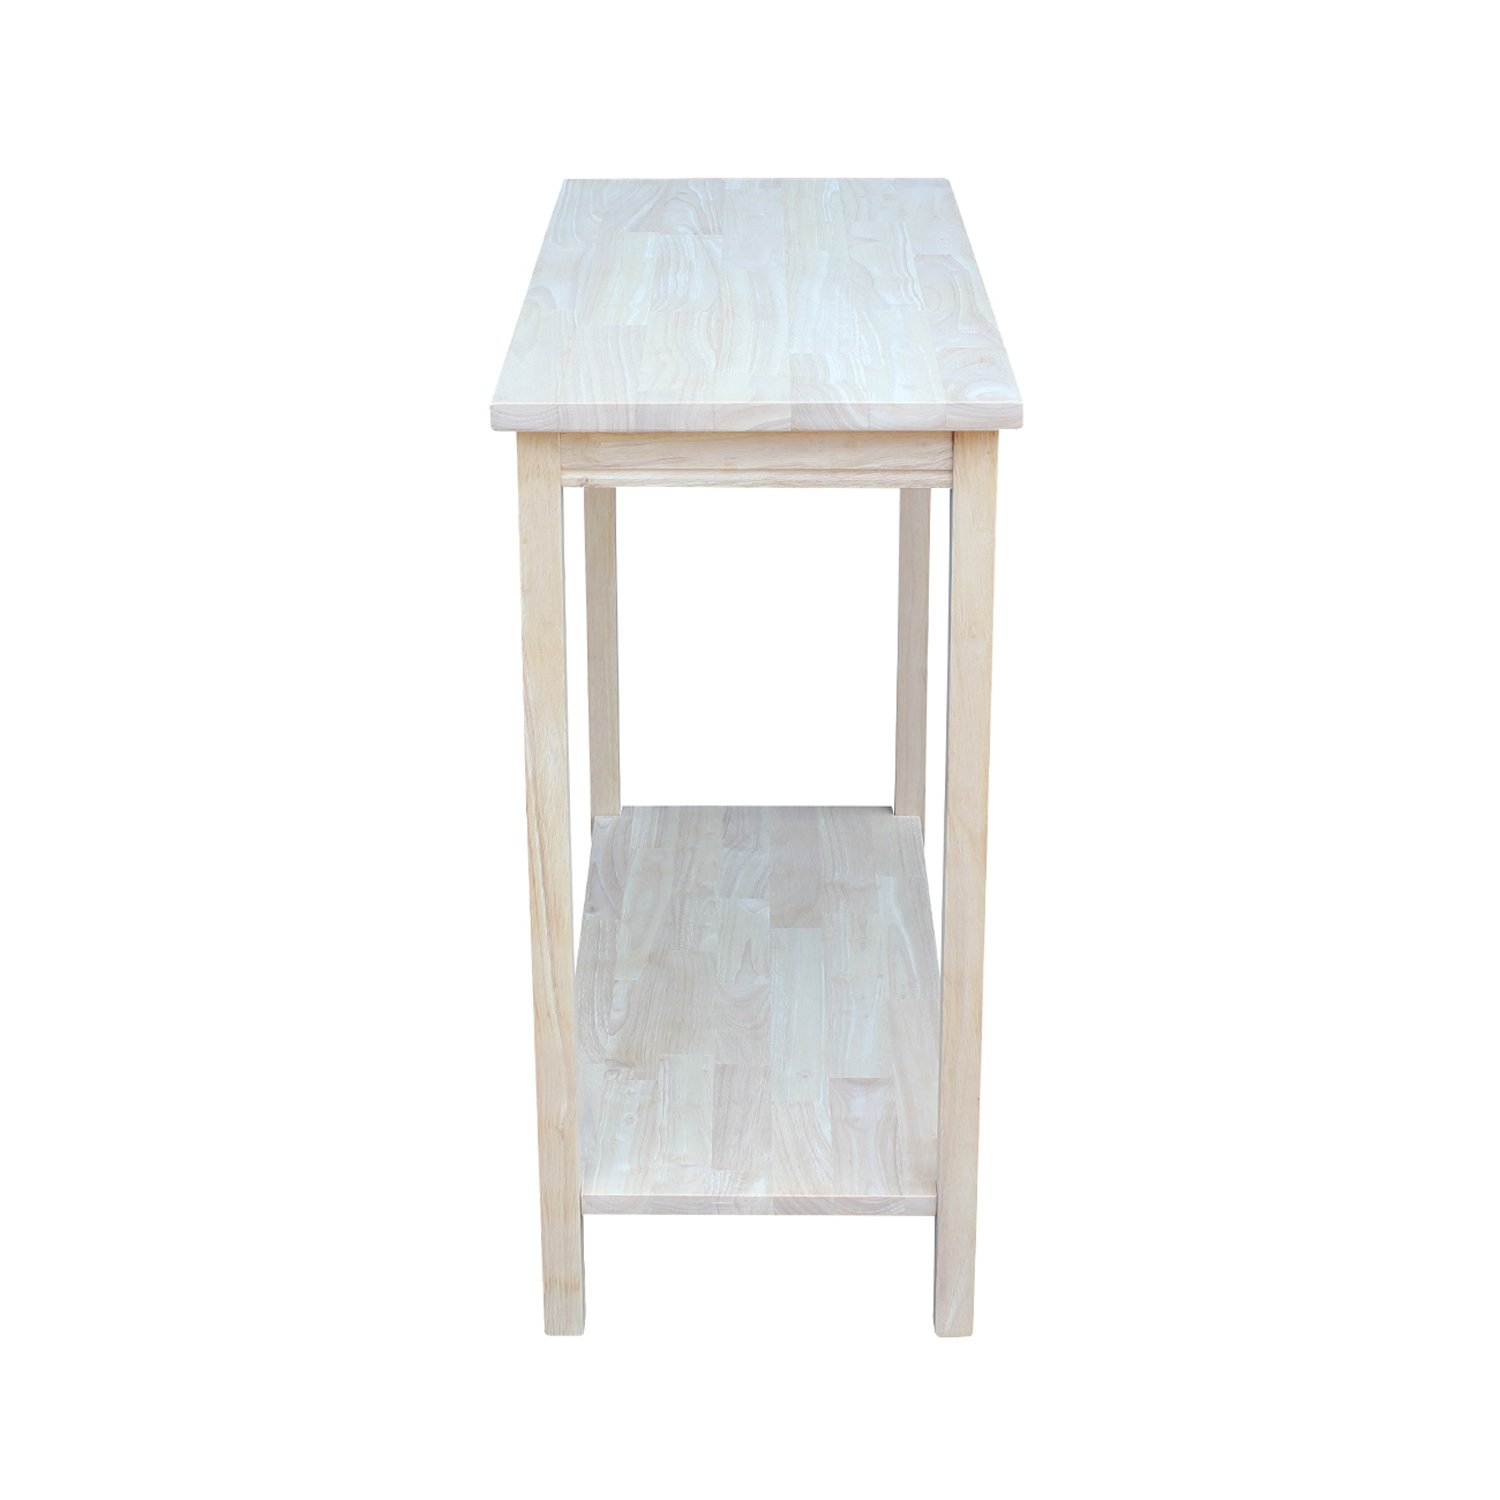 International Concepts OT-43 Accent Table, Unfinished by International Concepts (Image #5)